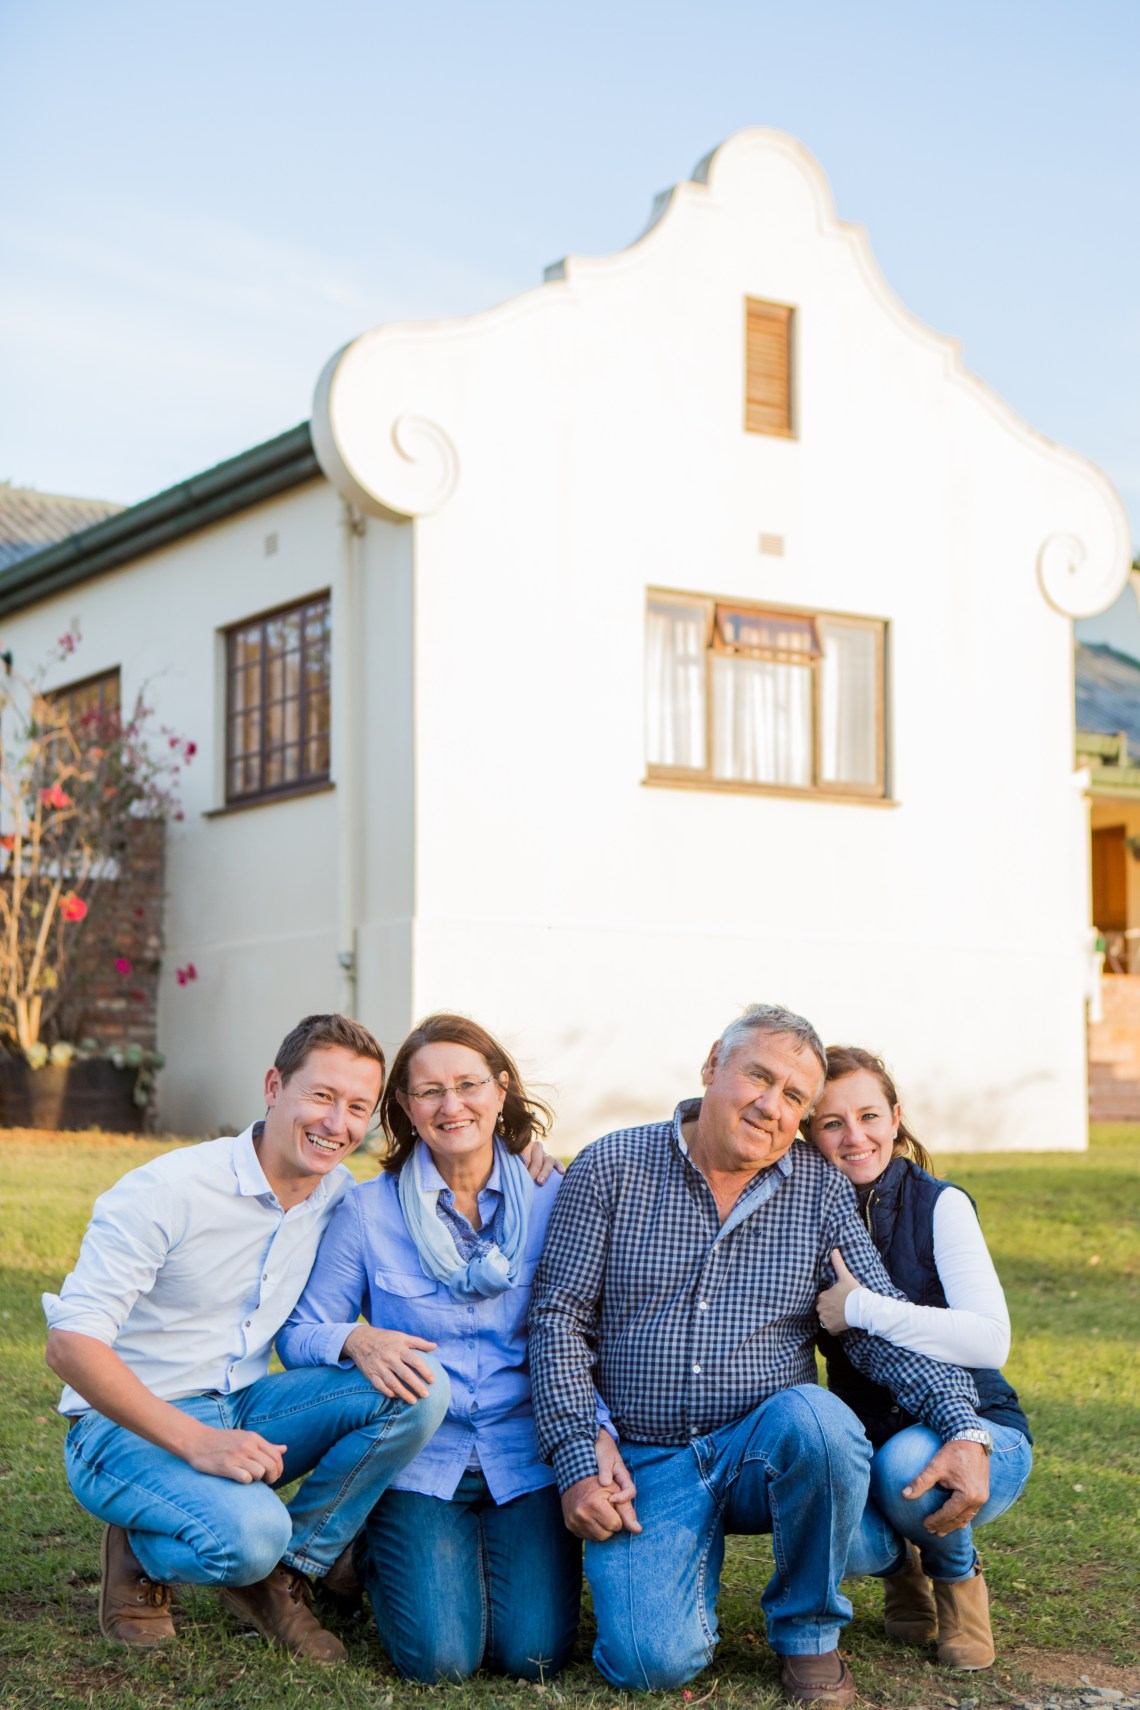 Family_Photography_South_Africa_Elana_van_Zyl_Photography-7770